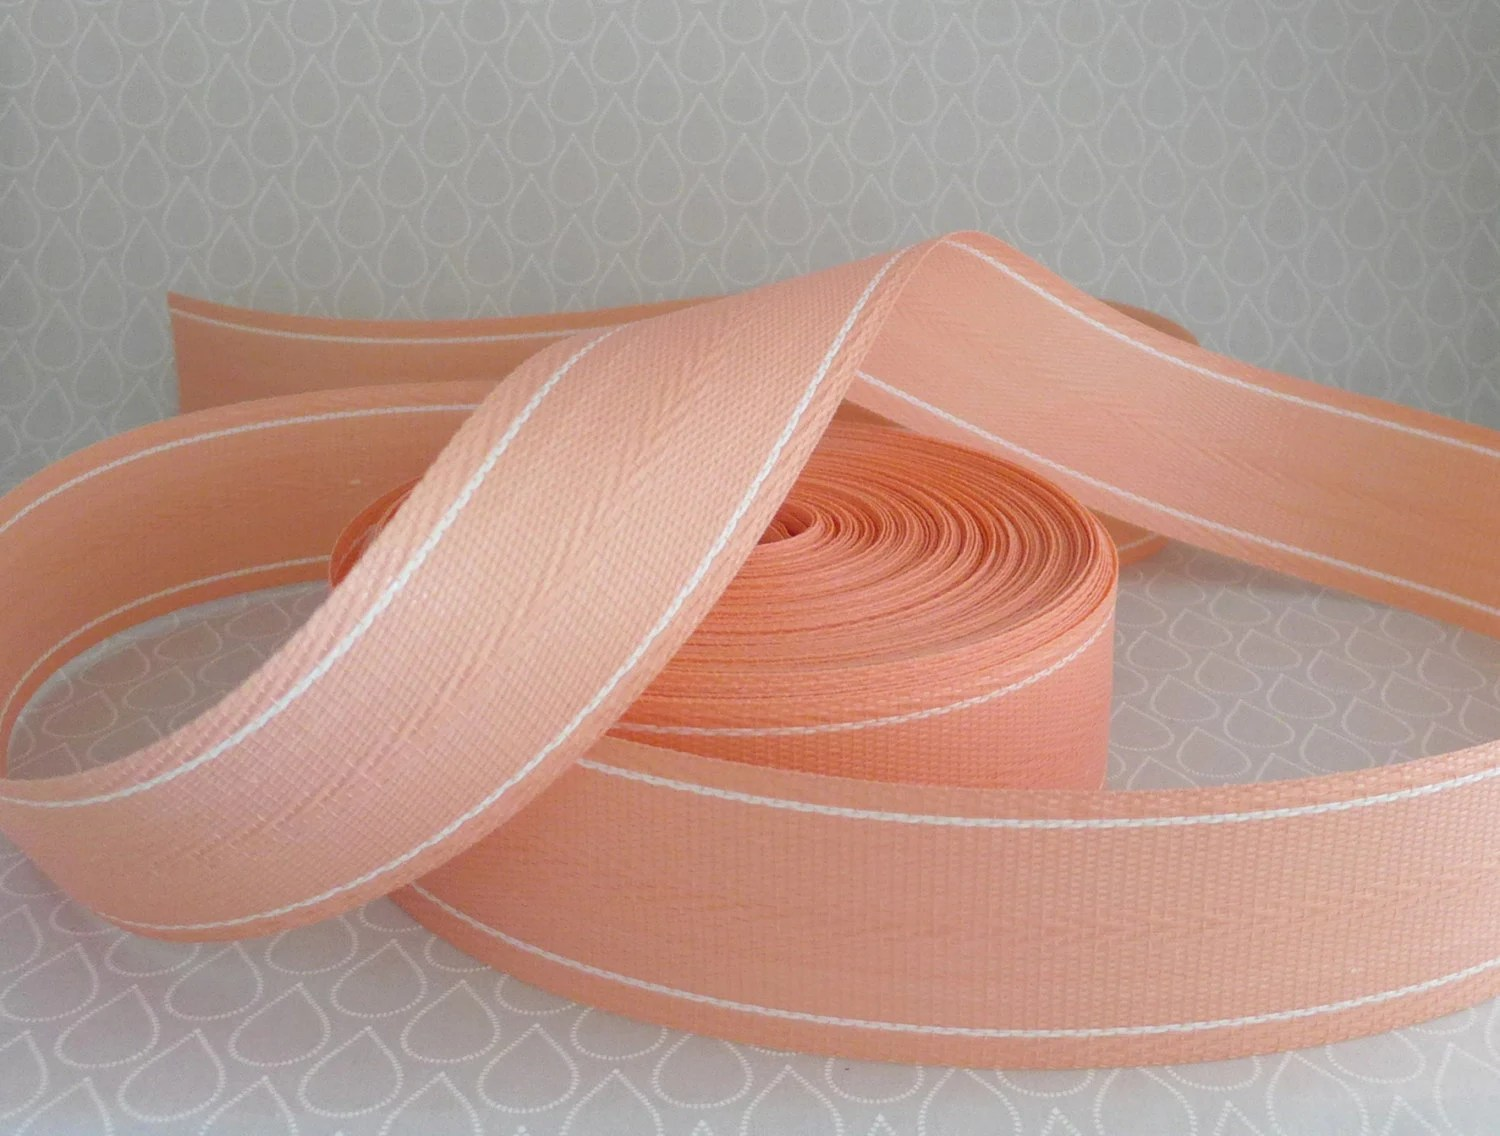 repair chair seat webbing white chairs for wedding reception lawn salmon peach pink heavy by